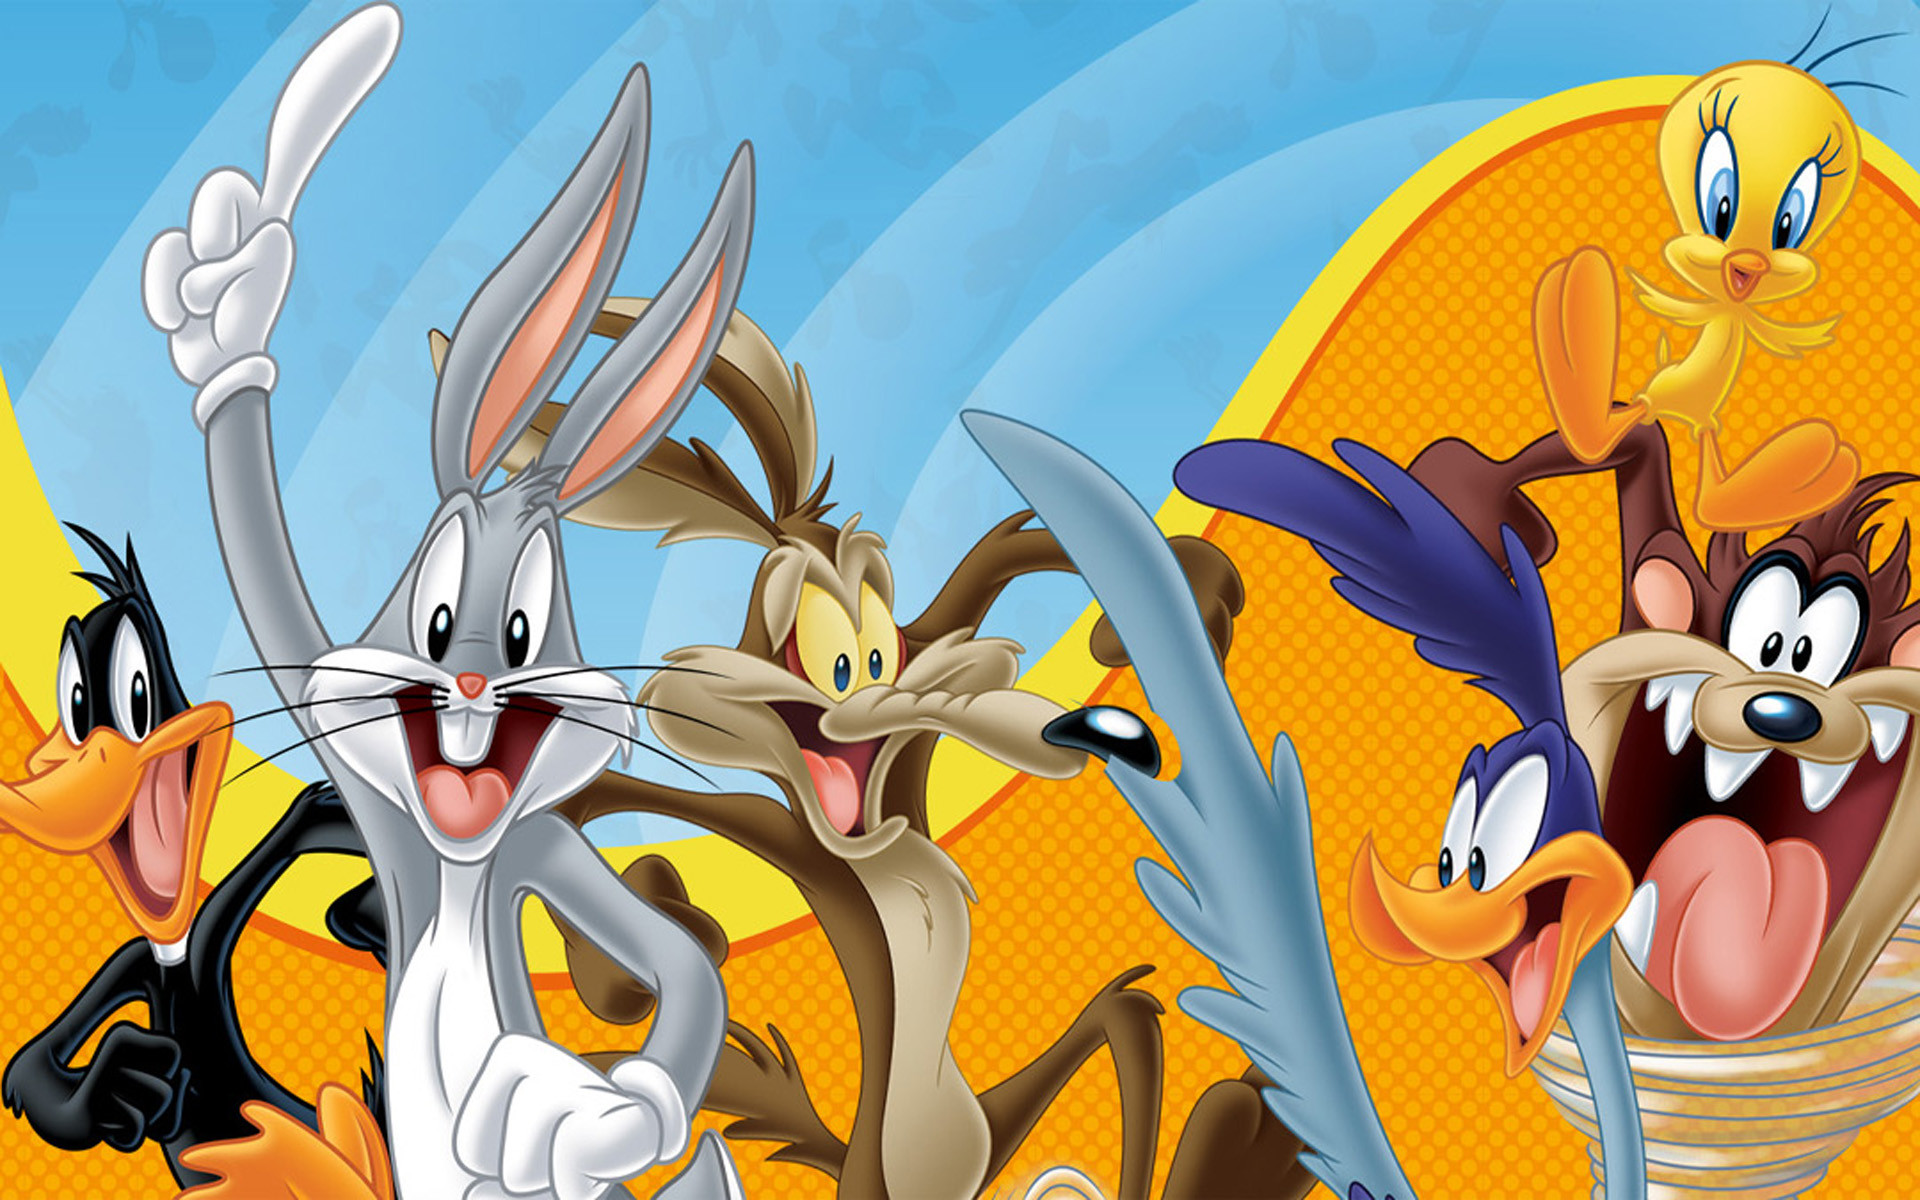 Baby looney tunes wallpaper 52 images - Looney tunes background ...